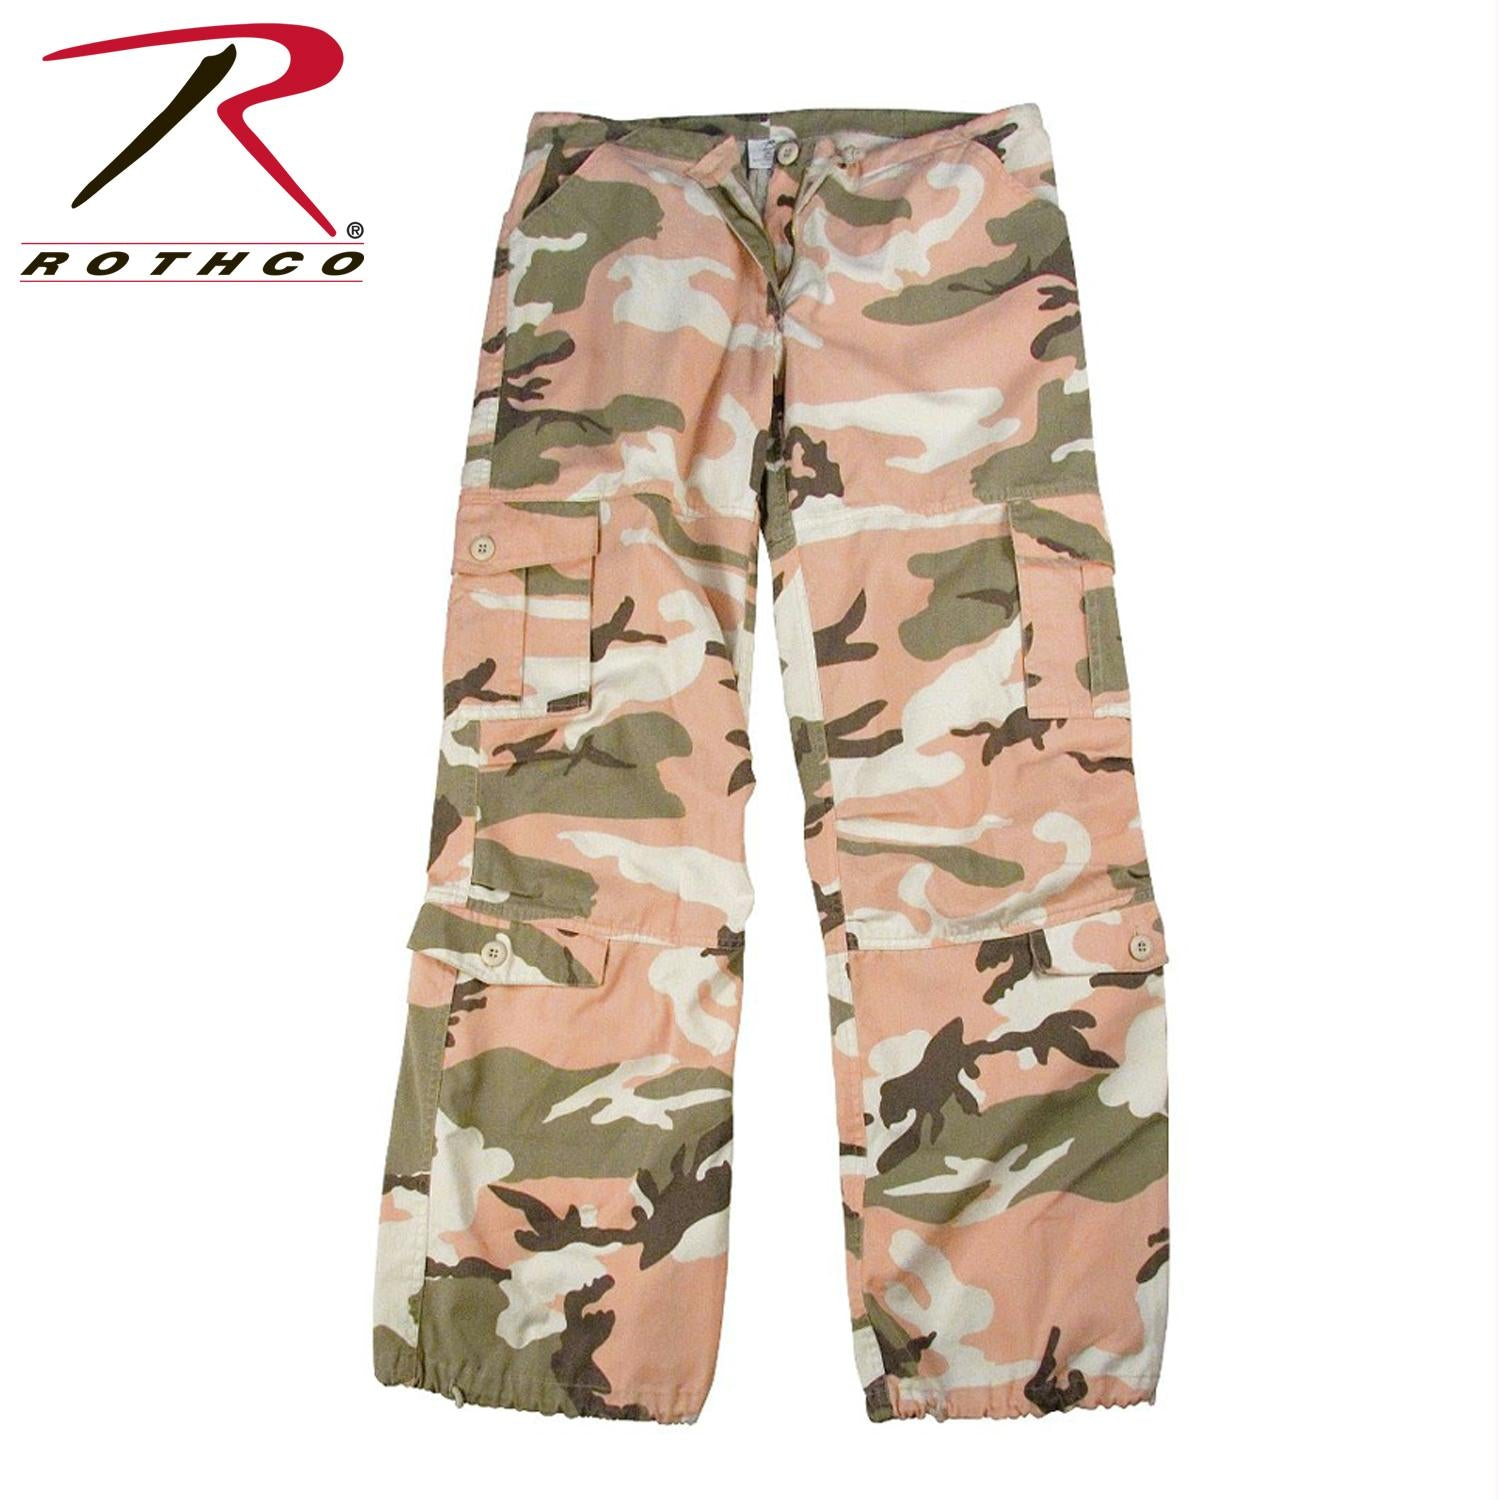 Rothco Womens Camo Vintage Paratrooper Fatigue Pants - Subdued Pink Camo / XL